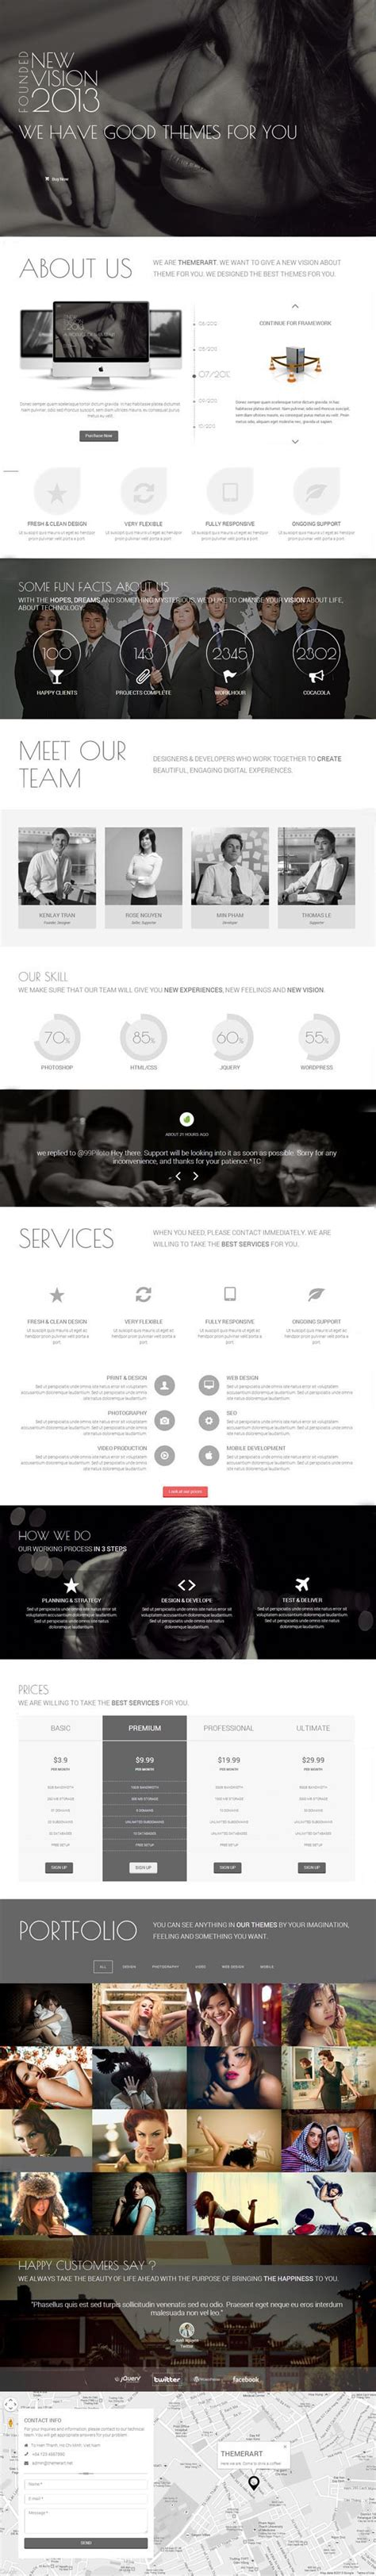 single page parallax template responsive html5 templates for modern websites html5